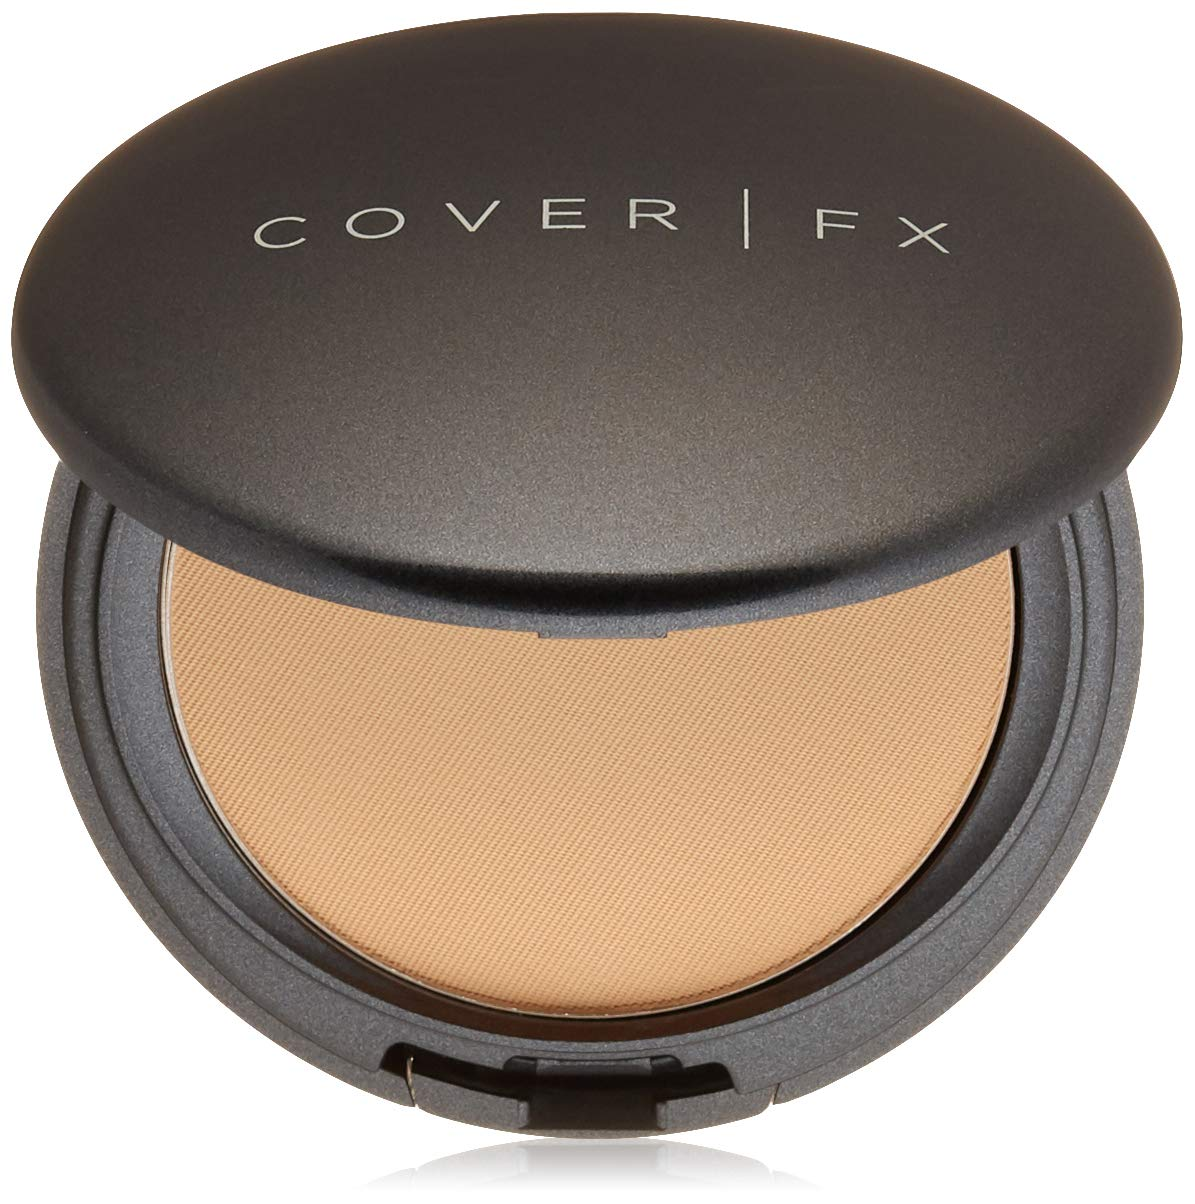 Cover FX Pressed Mineral Talc-free Outlet SALE Foundation Powder Foundation: Very popular